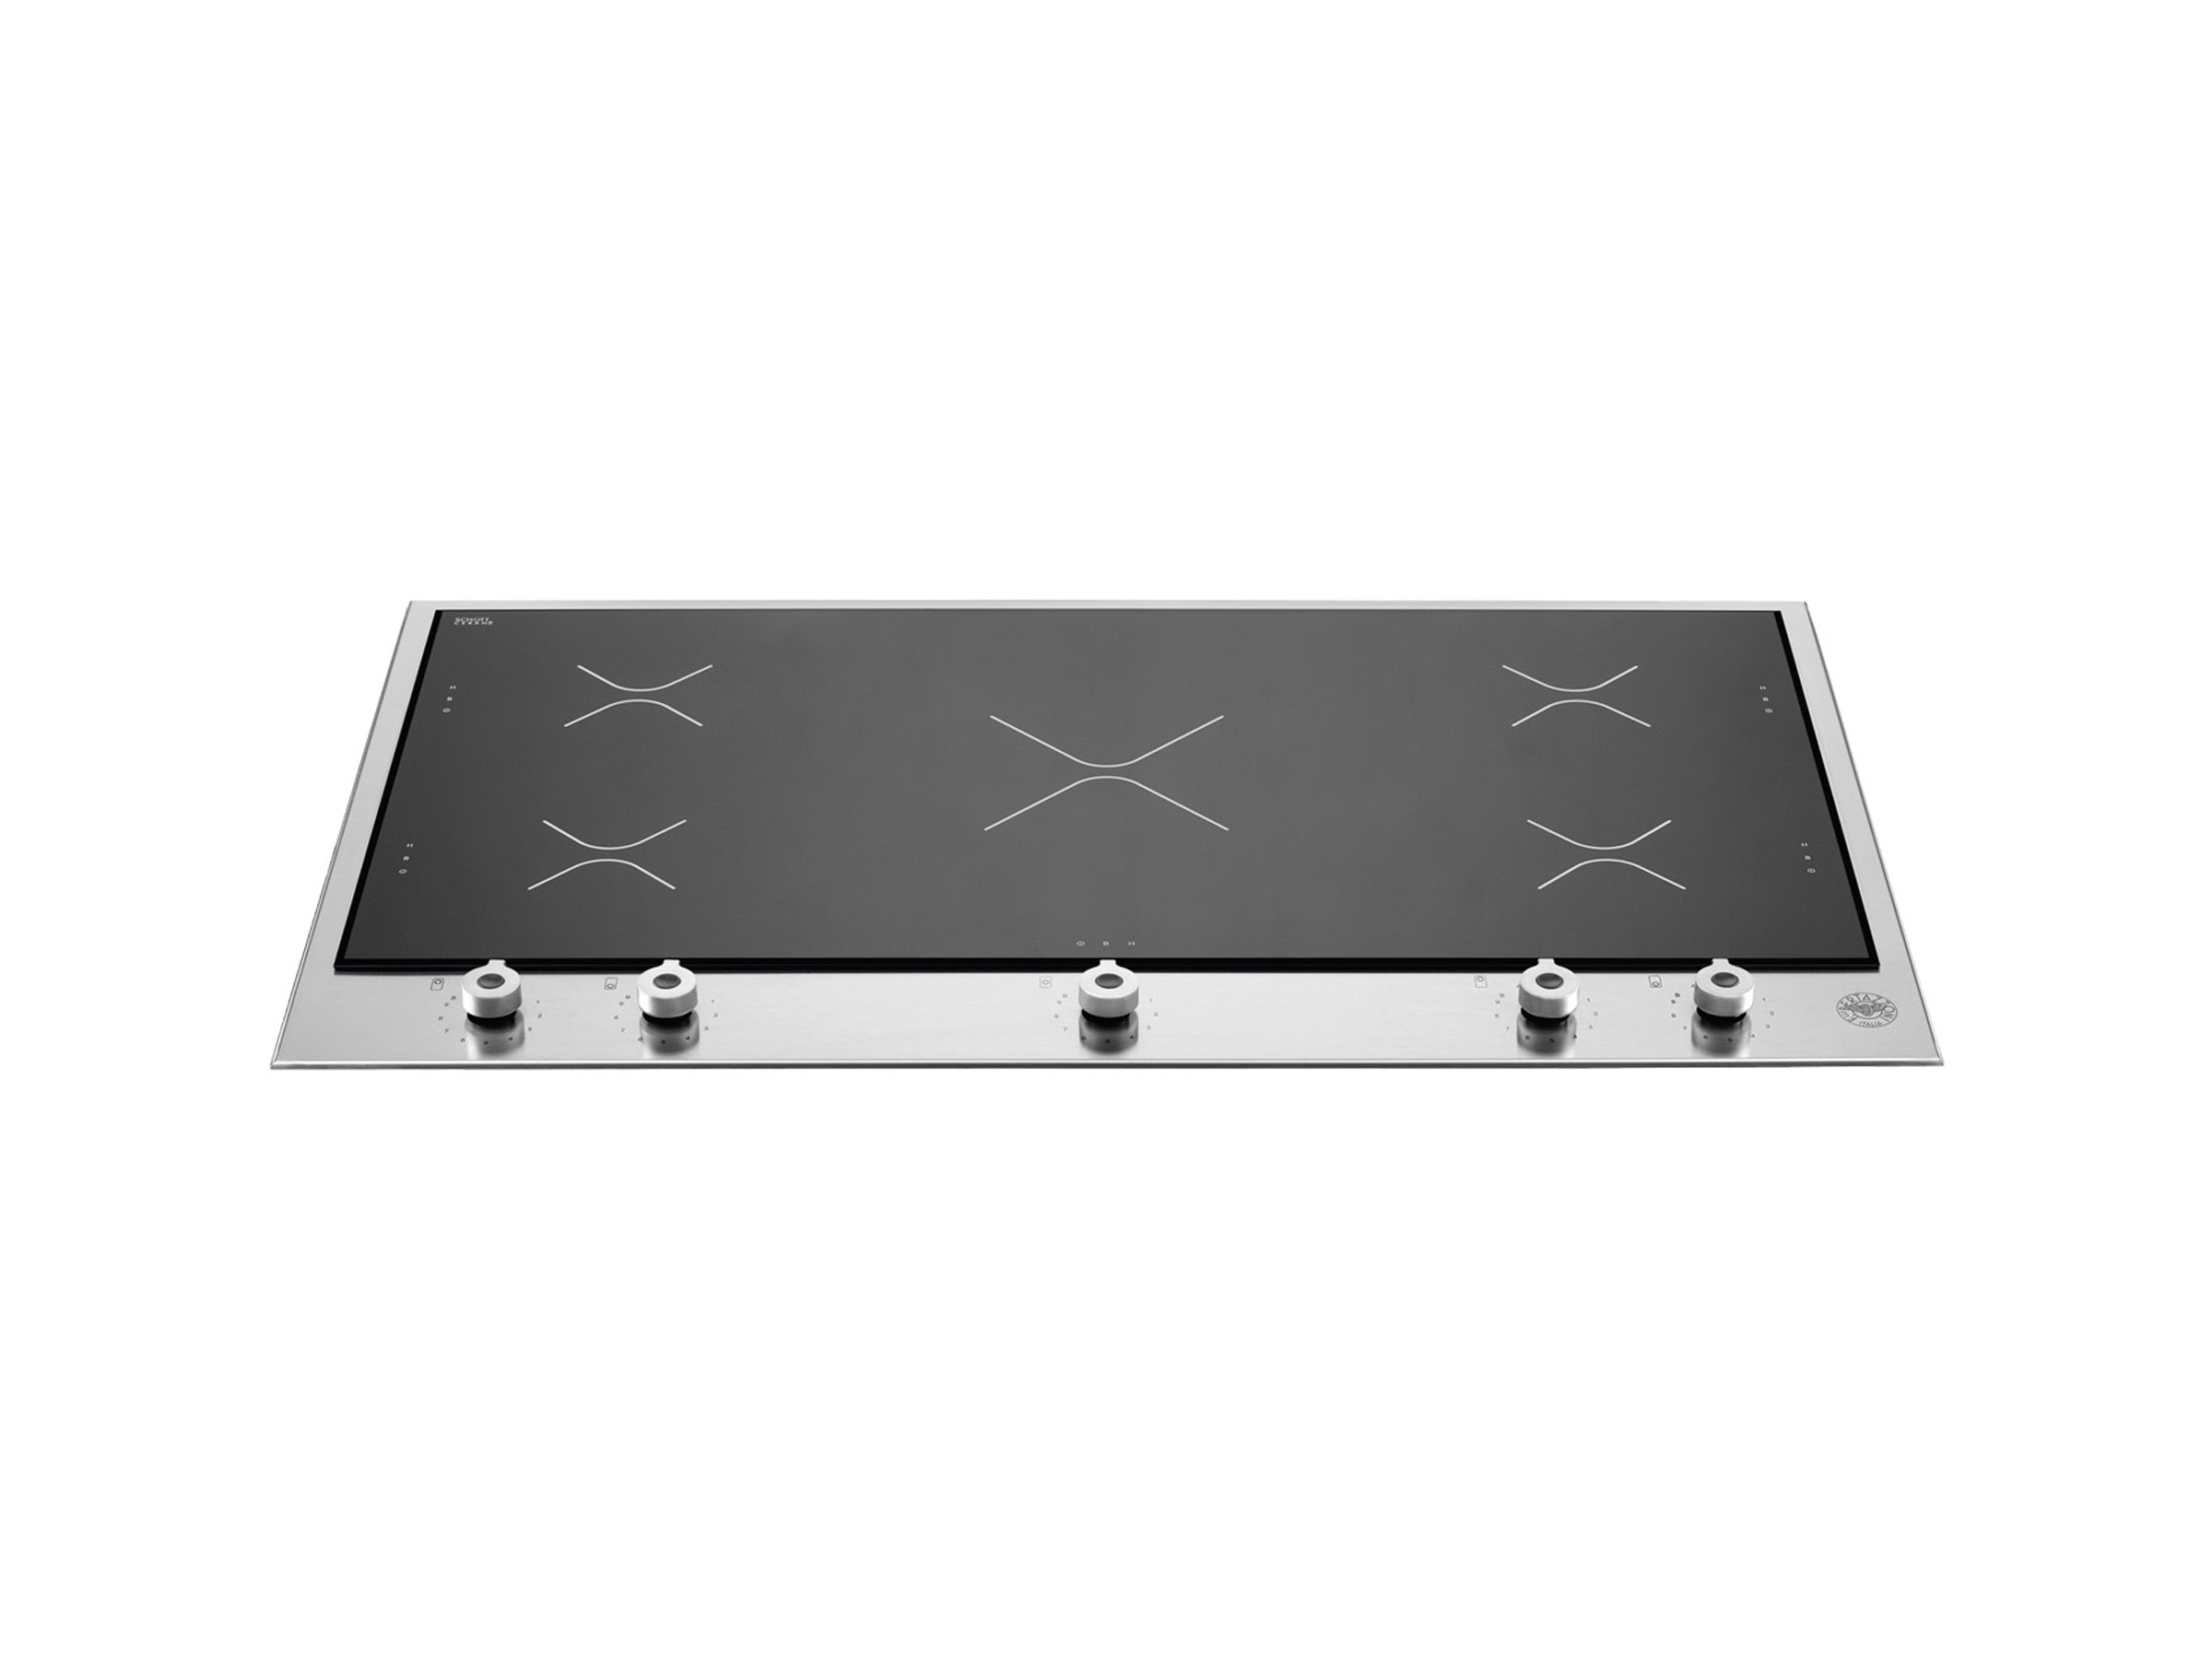 36 Segmented Cooktop 5 induction zones | Bertazzoni - Stainless